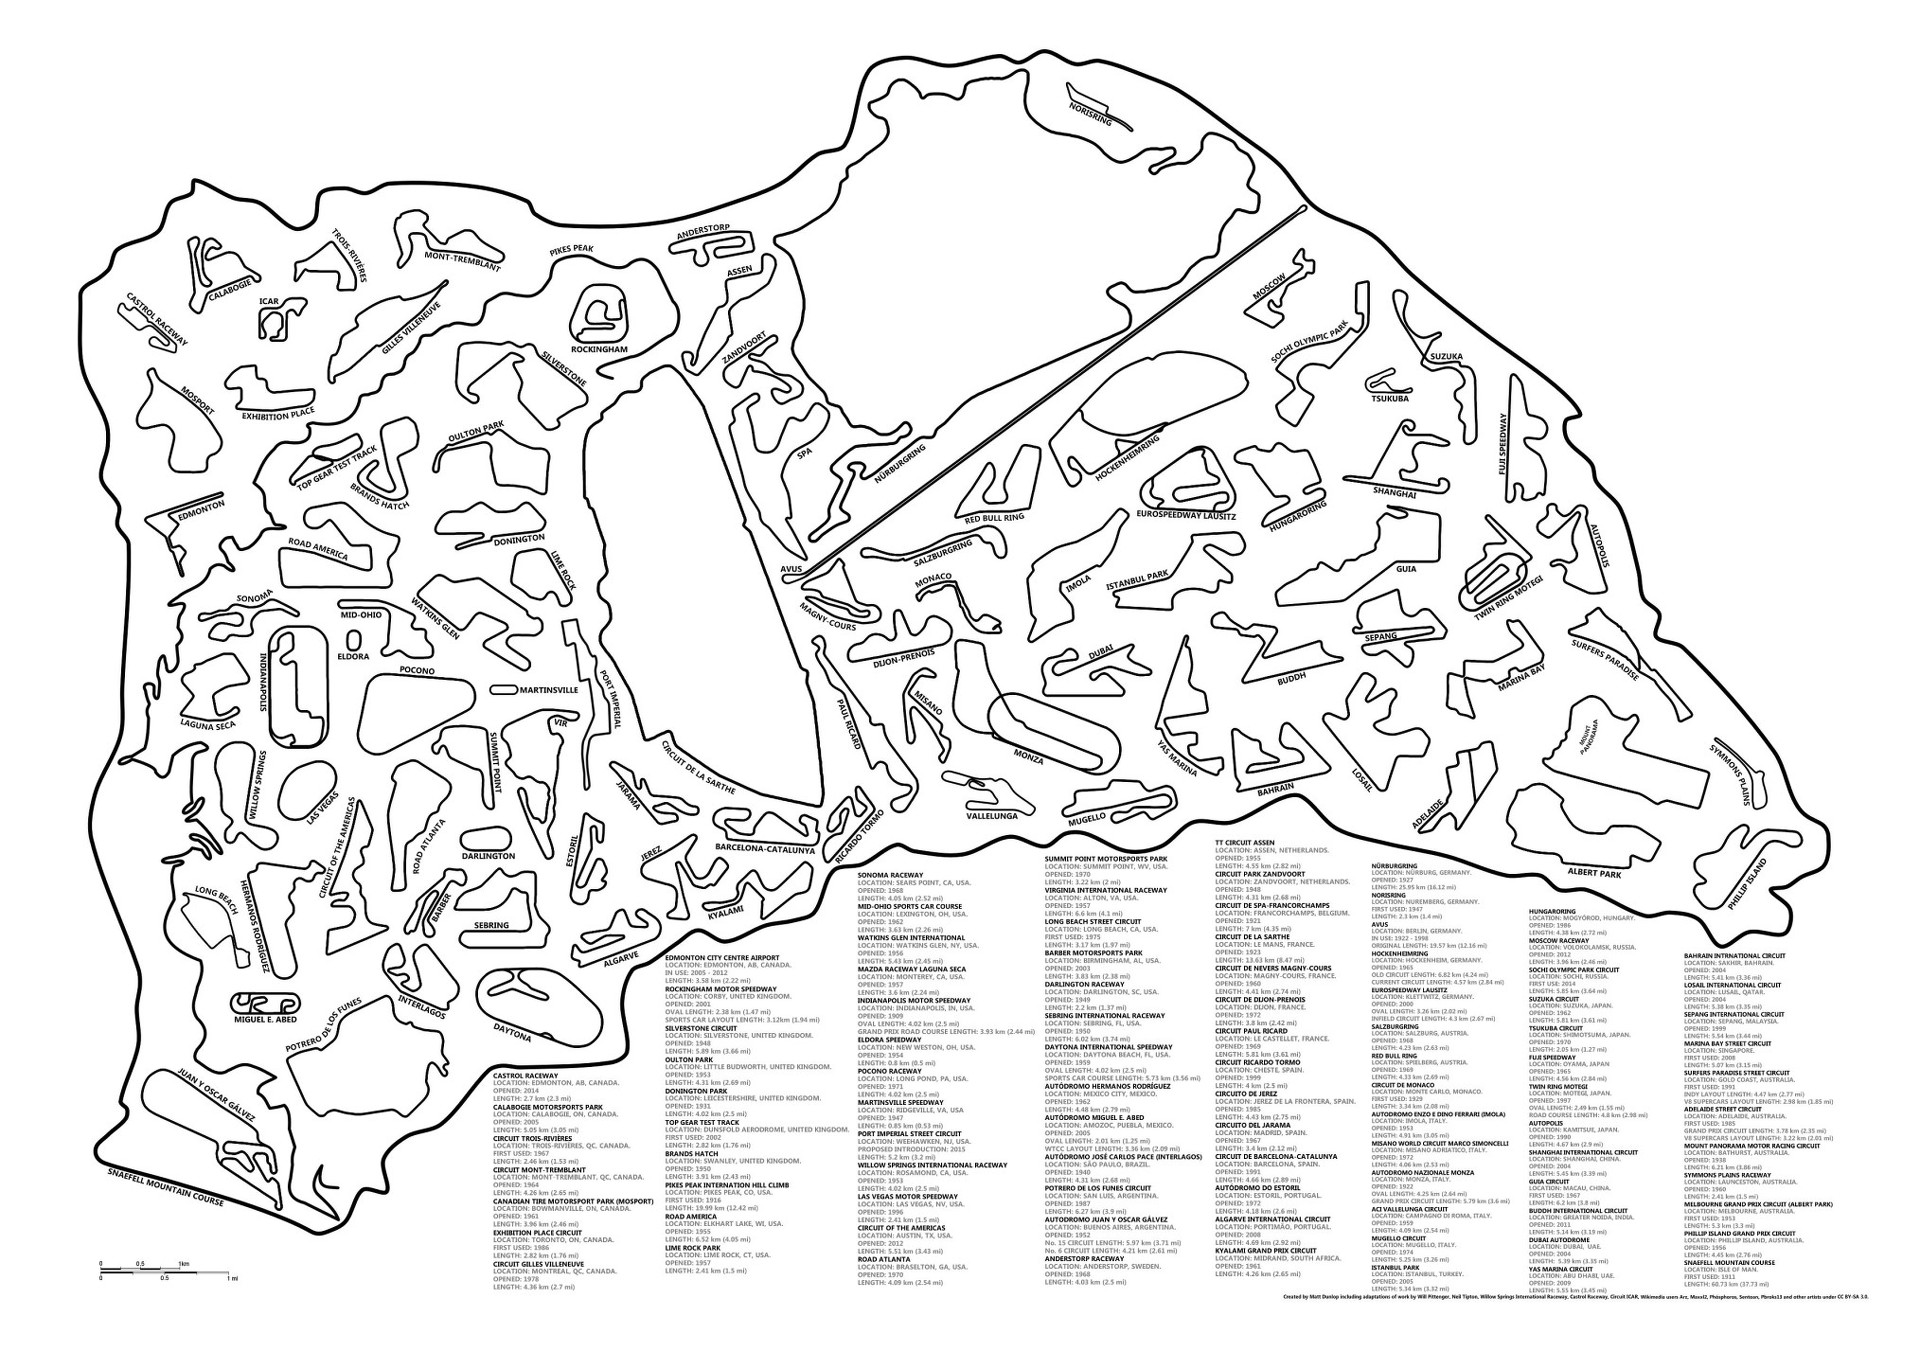 95 Famous Race Tracks in one Epic Graphic